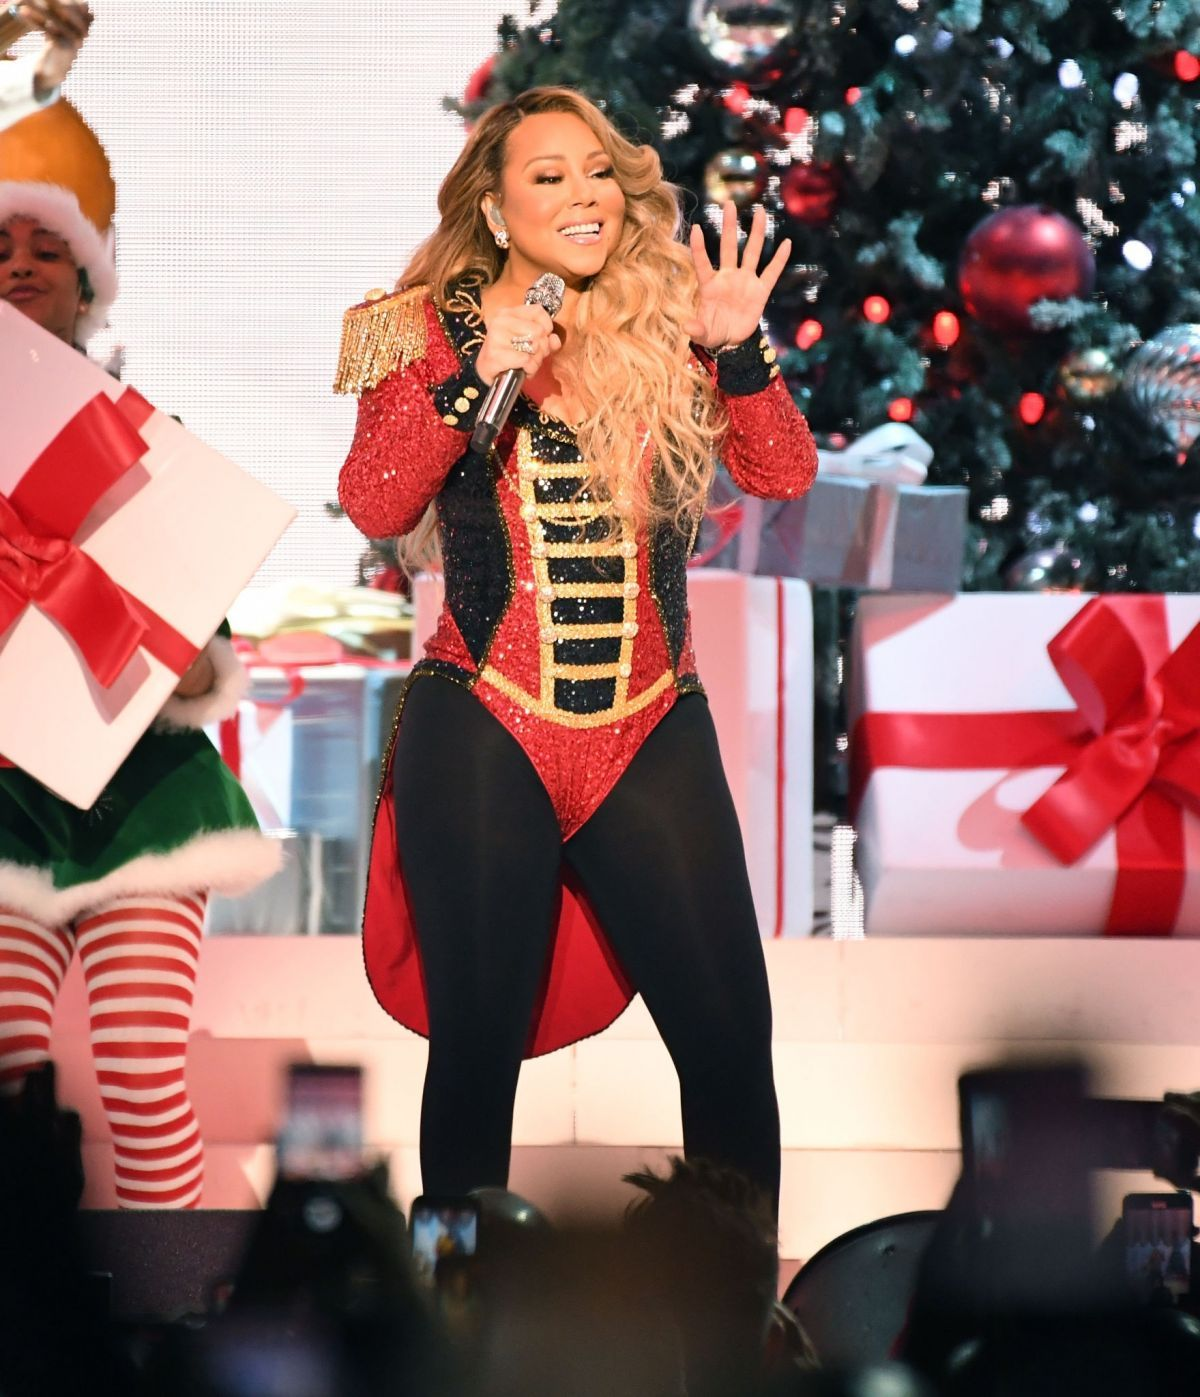 Mariah Carey Performs At Her All I Want For Christmas Is You Tour At Madison Square Garden In New York 12 15 2019 In 2020 Mariah Carey Carey Mariah